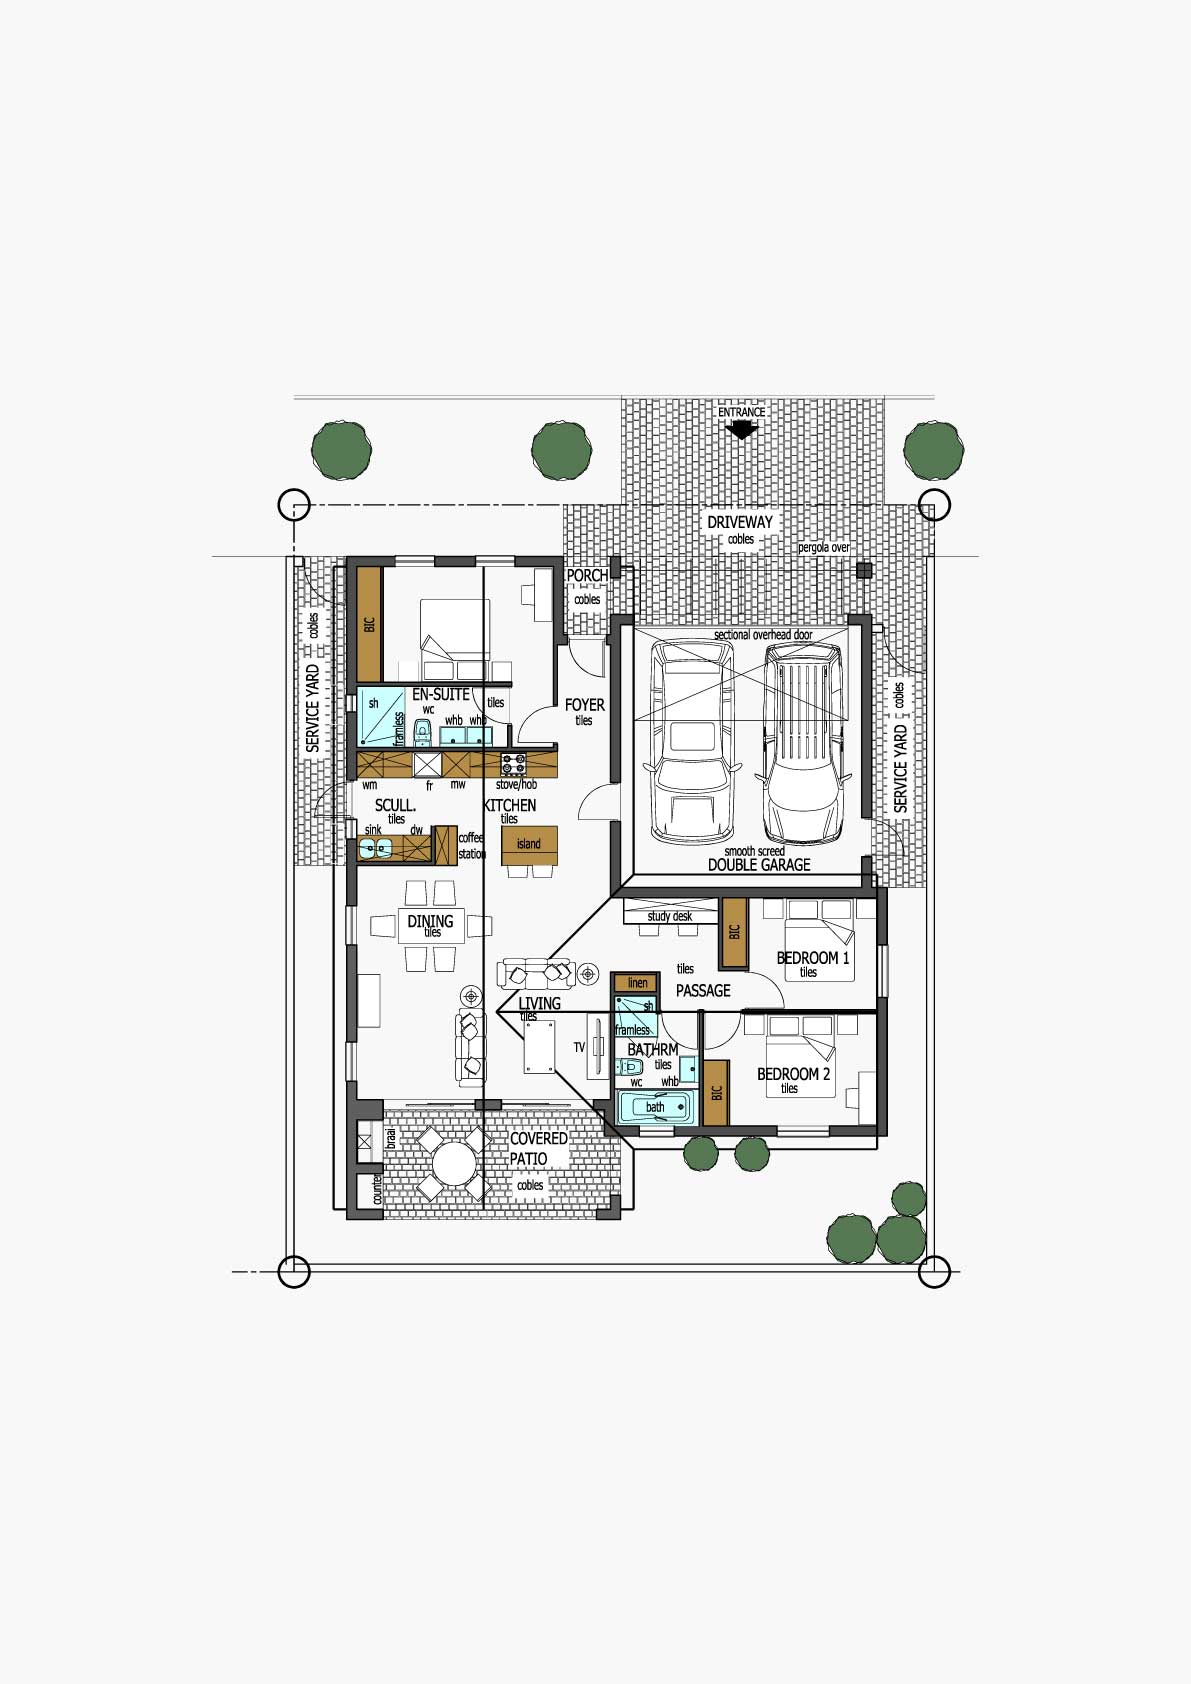 Homes Unit Layout - Type C